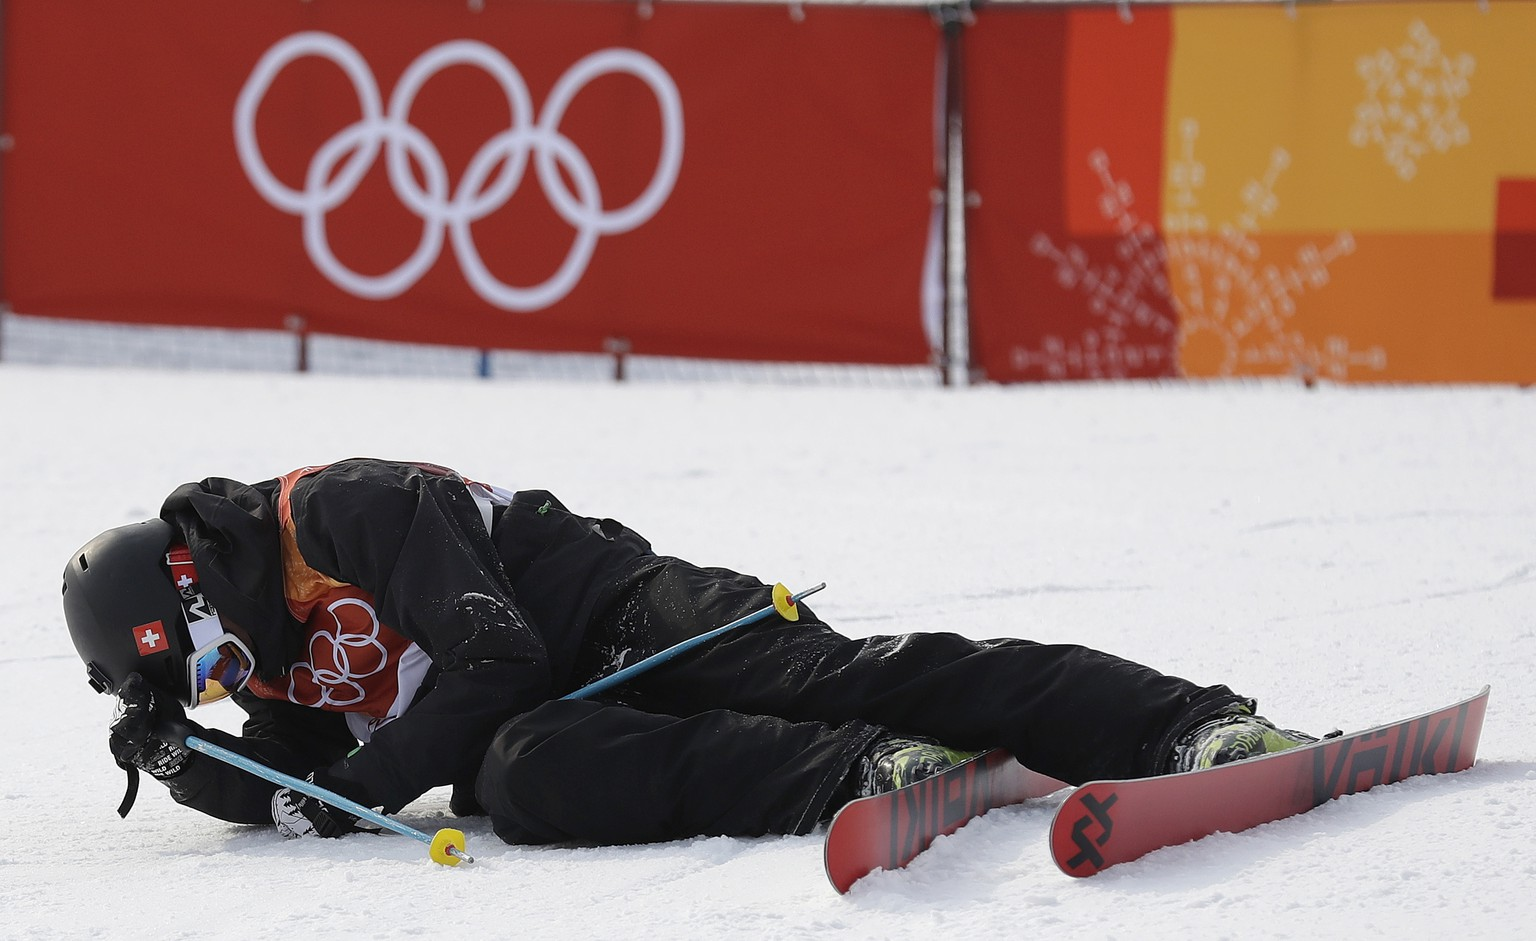 Andri Ragettli, of Switzerland, sits on the course after crashing during the men's slopestyle final at Phoenix Snow Park at the 2018 Winter Olympics in Pyeongchang, South Korea, Sunday, Feb. 18, 2018. (AP Photo/Gregory Bull)